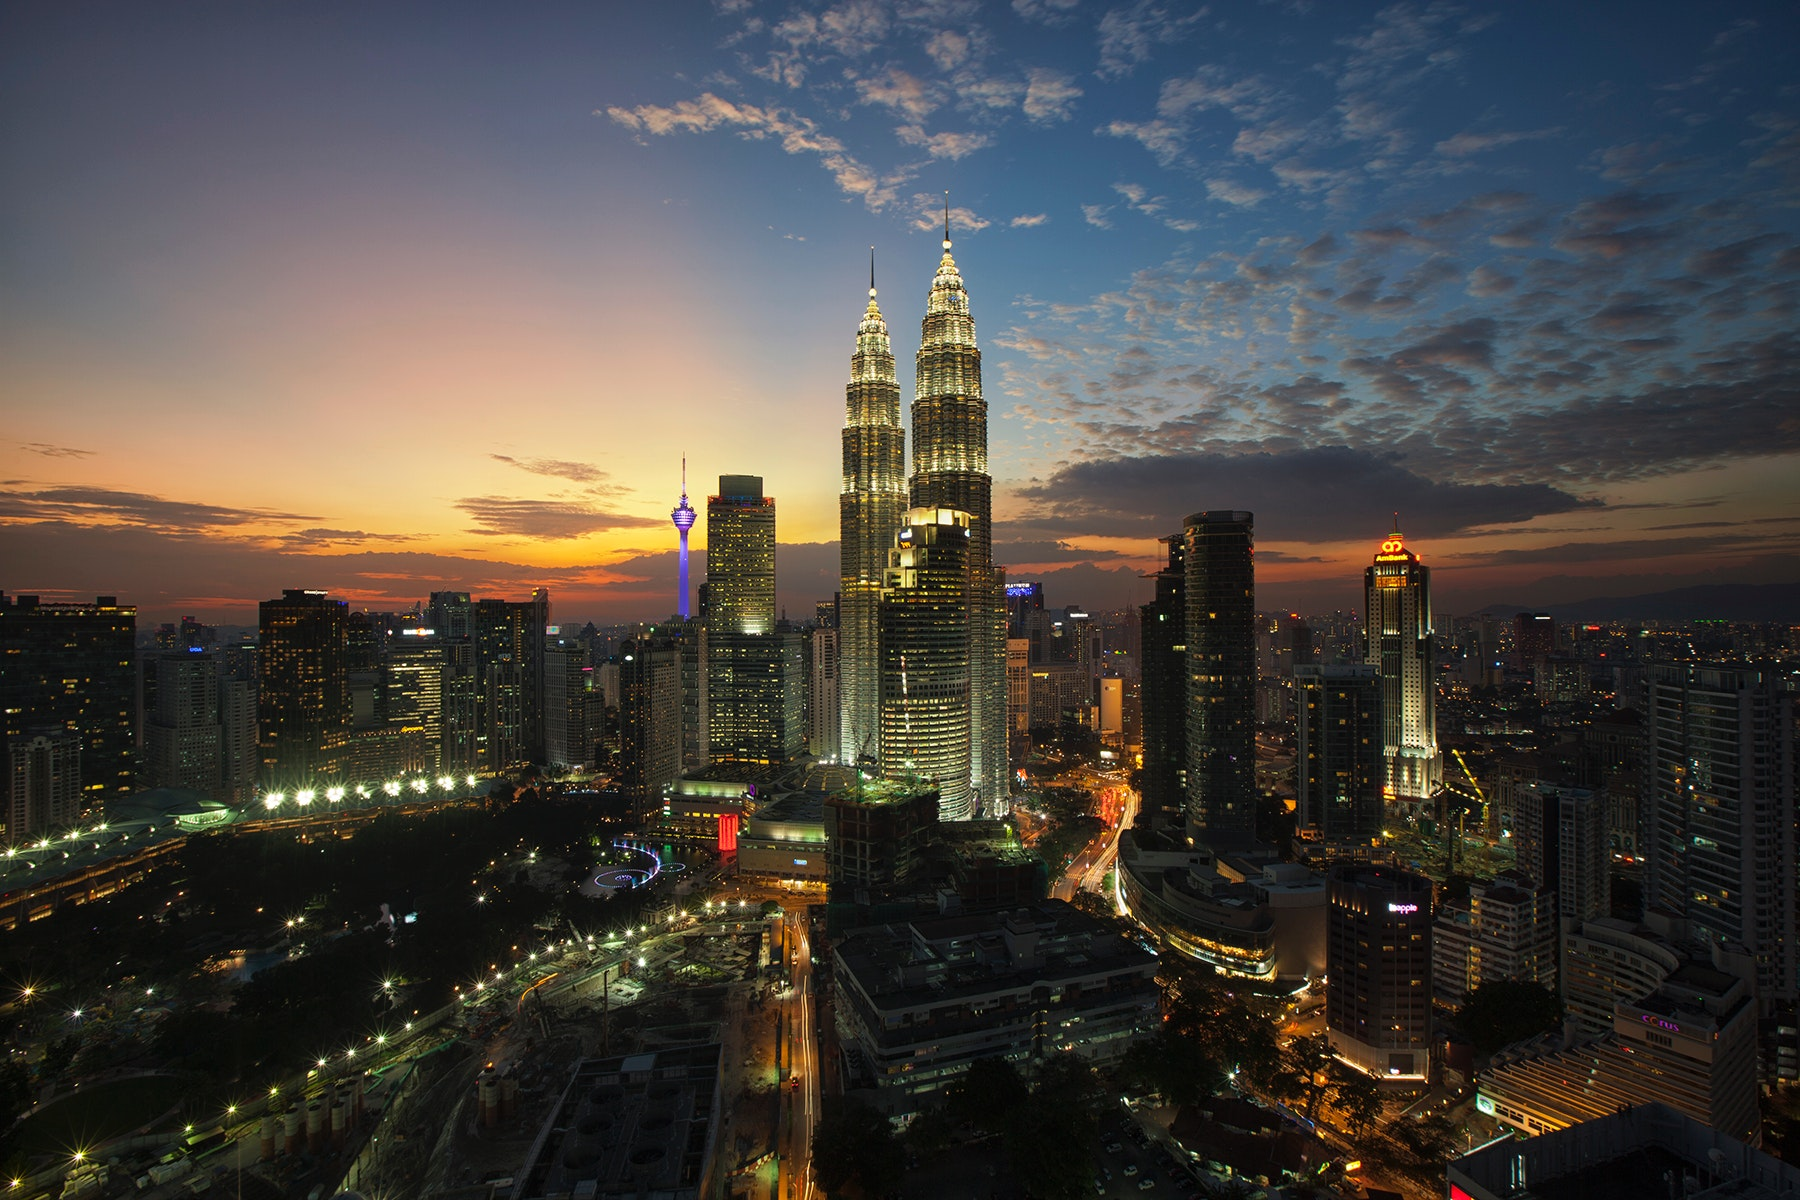 PropertyGuru - The Beginner's Guide to Investing in Property in Malaysia